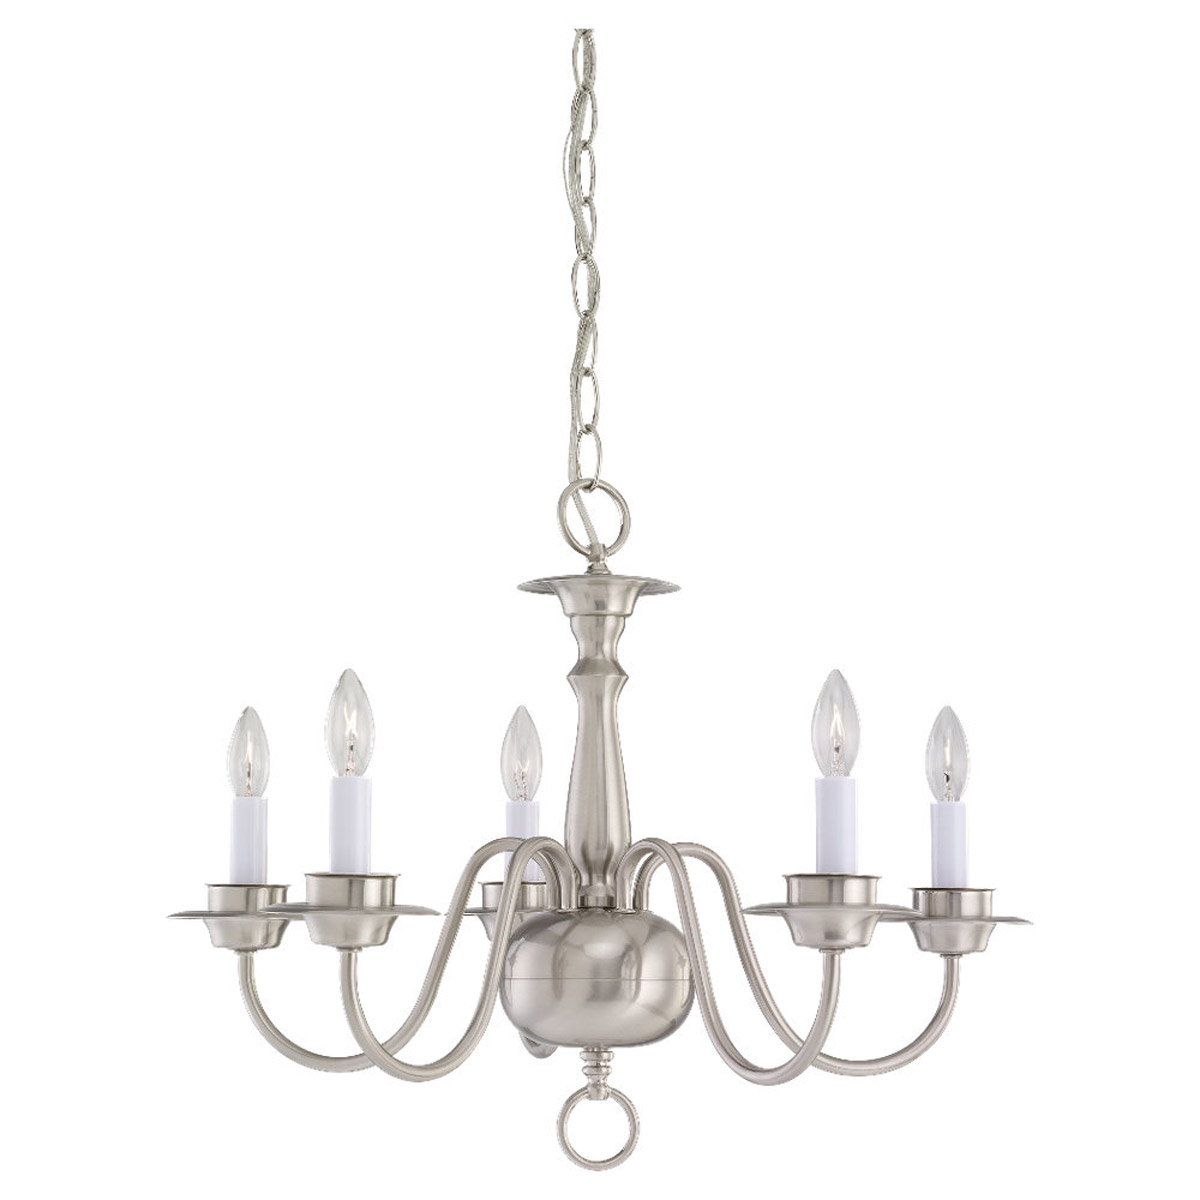 Sea Gull Lighting Traditional 5 Light Chandelier in Brushed Nickel 3314-962 photo